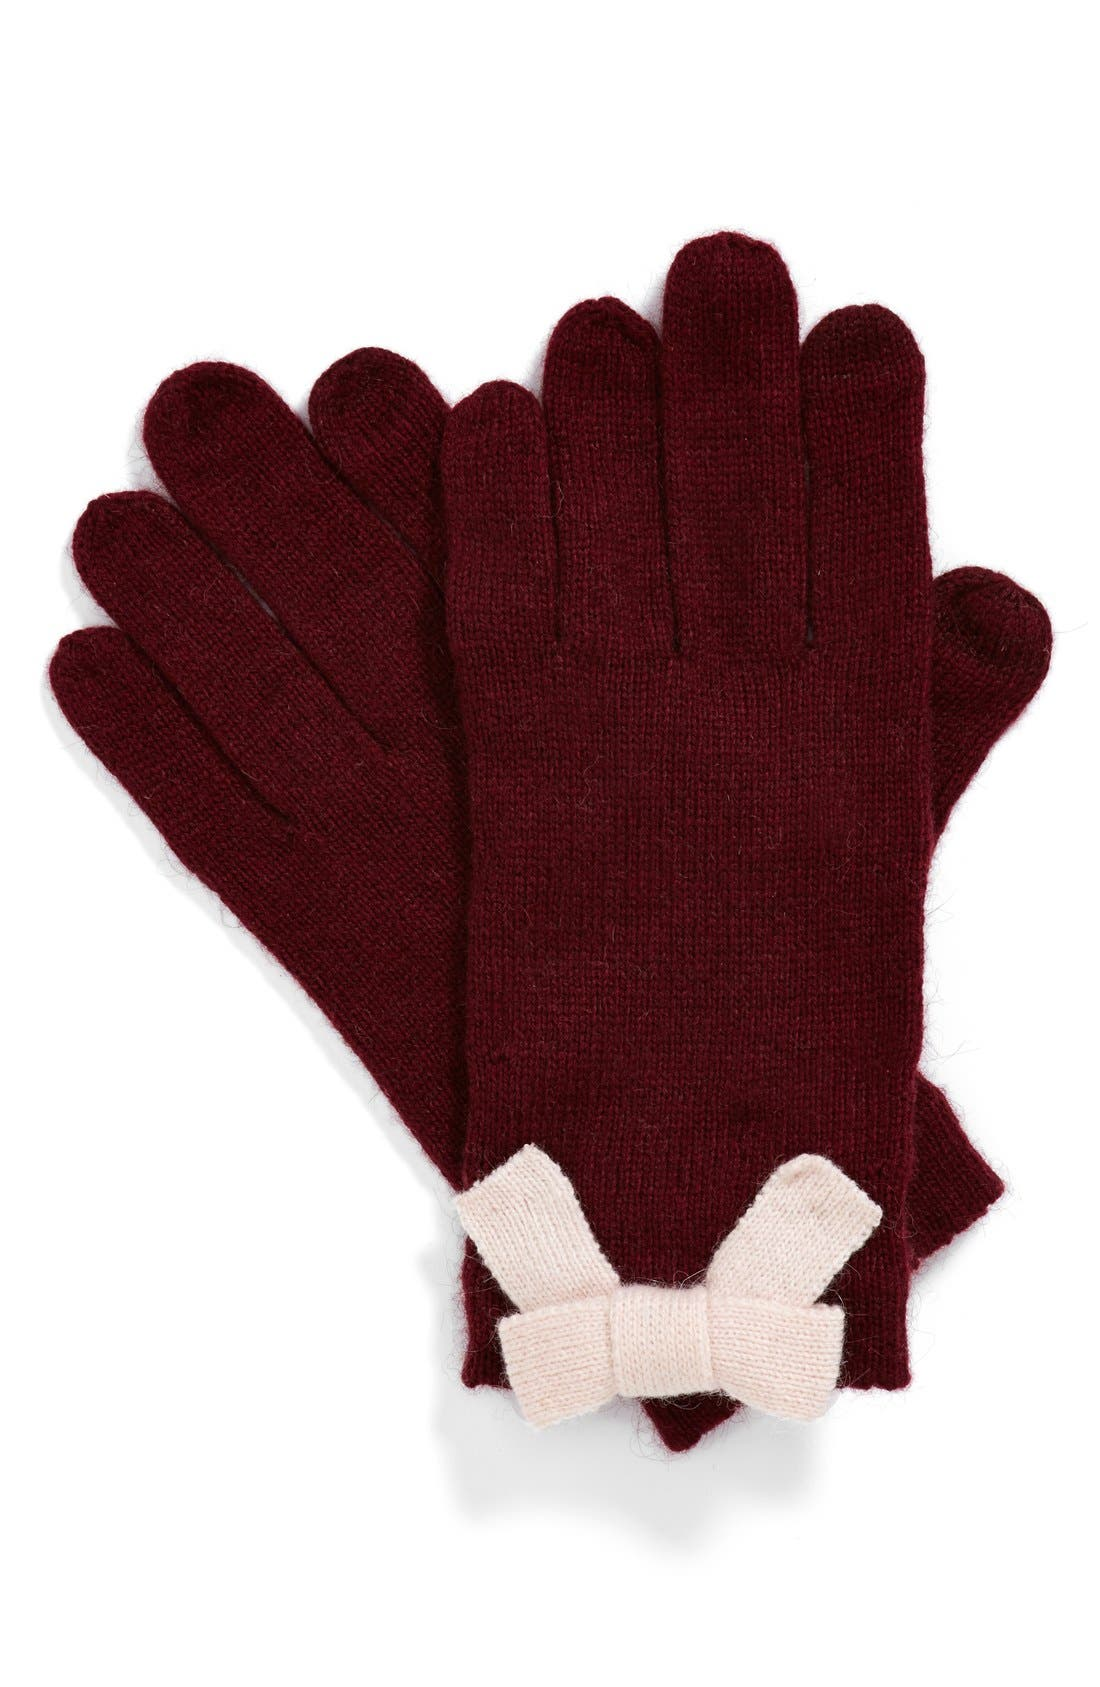 Main Image - kate spade new york bow gloves